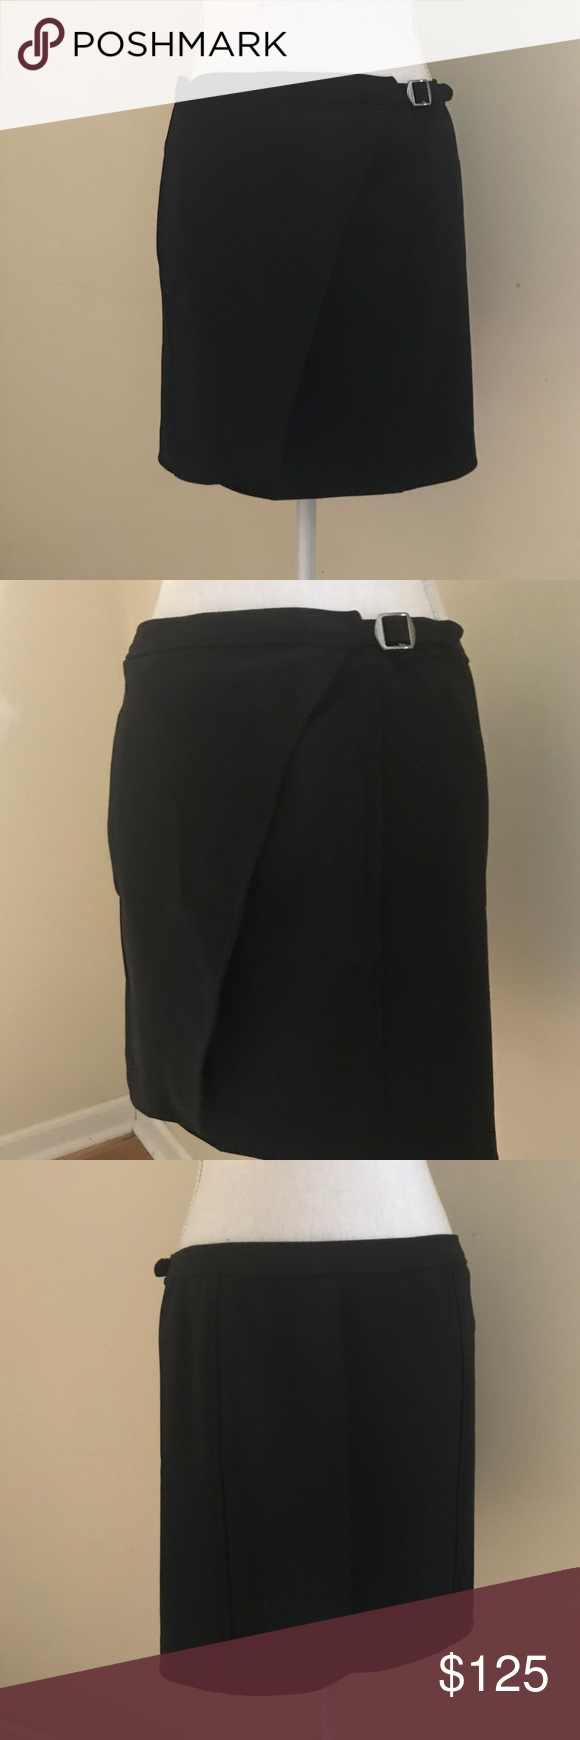 Emerson Fry Wrap Skirt Mini Solid Black Emerson Fry Wrap Skirt  Short Mini  Solid Black  Size 00 )fits around xs /s. see measurement pic NWT Emerson Fry Skirts #emersonfry Emerson Fry Wrap Skirt Mini Solid Black Emerson Fry Wrap Skirt  Short Mini  Solid Black  Size 00 )fits around xs /s. see measurement pic NWT Emerson Fry Skirts #emersonfry